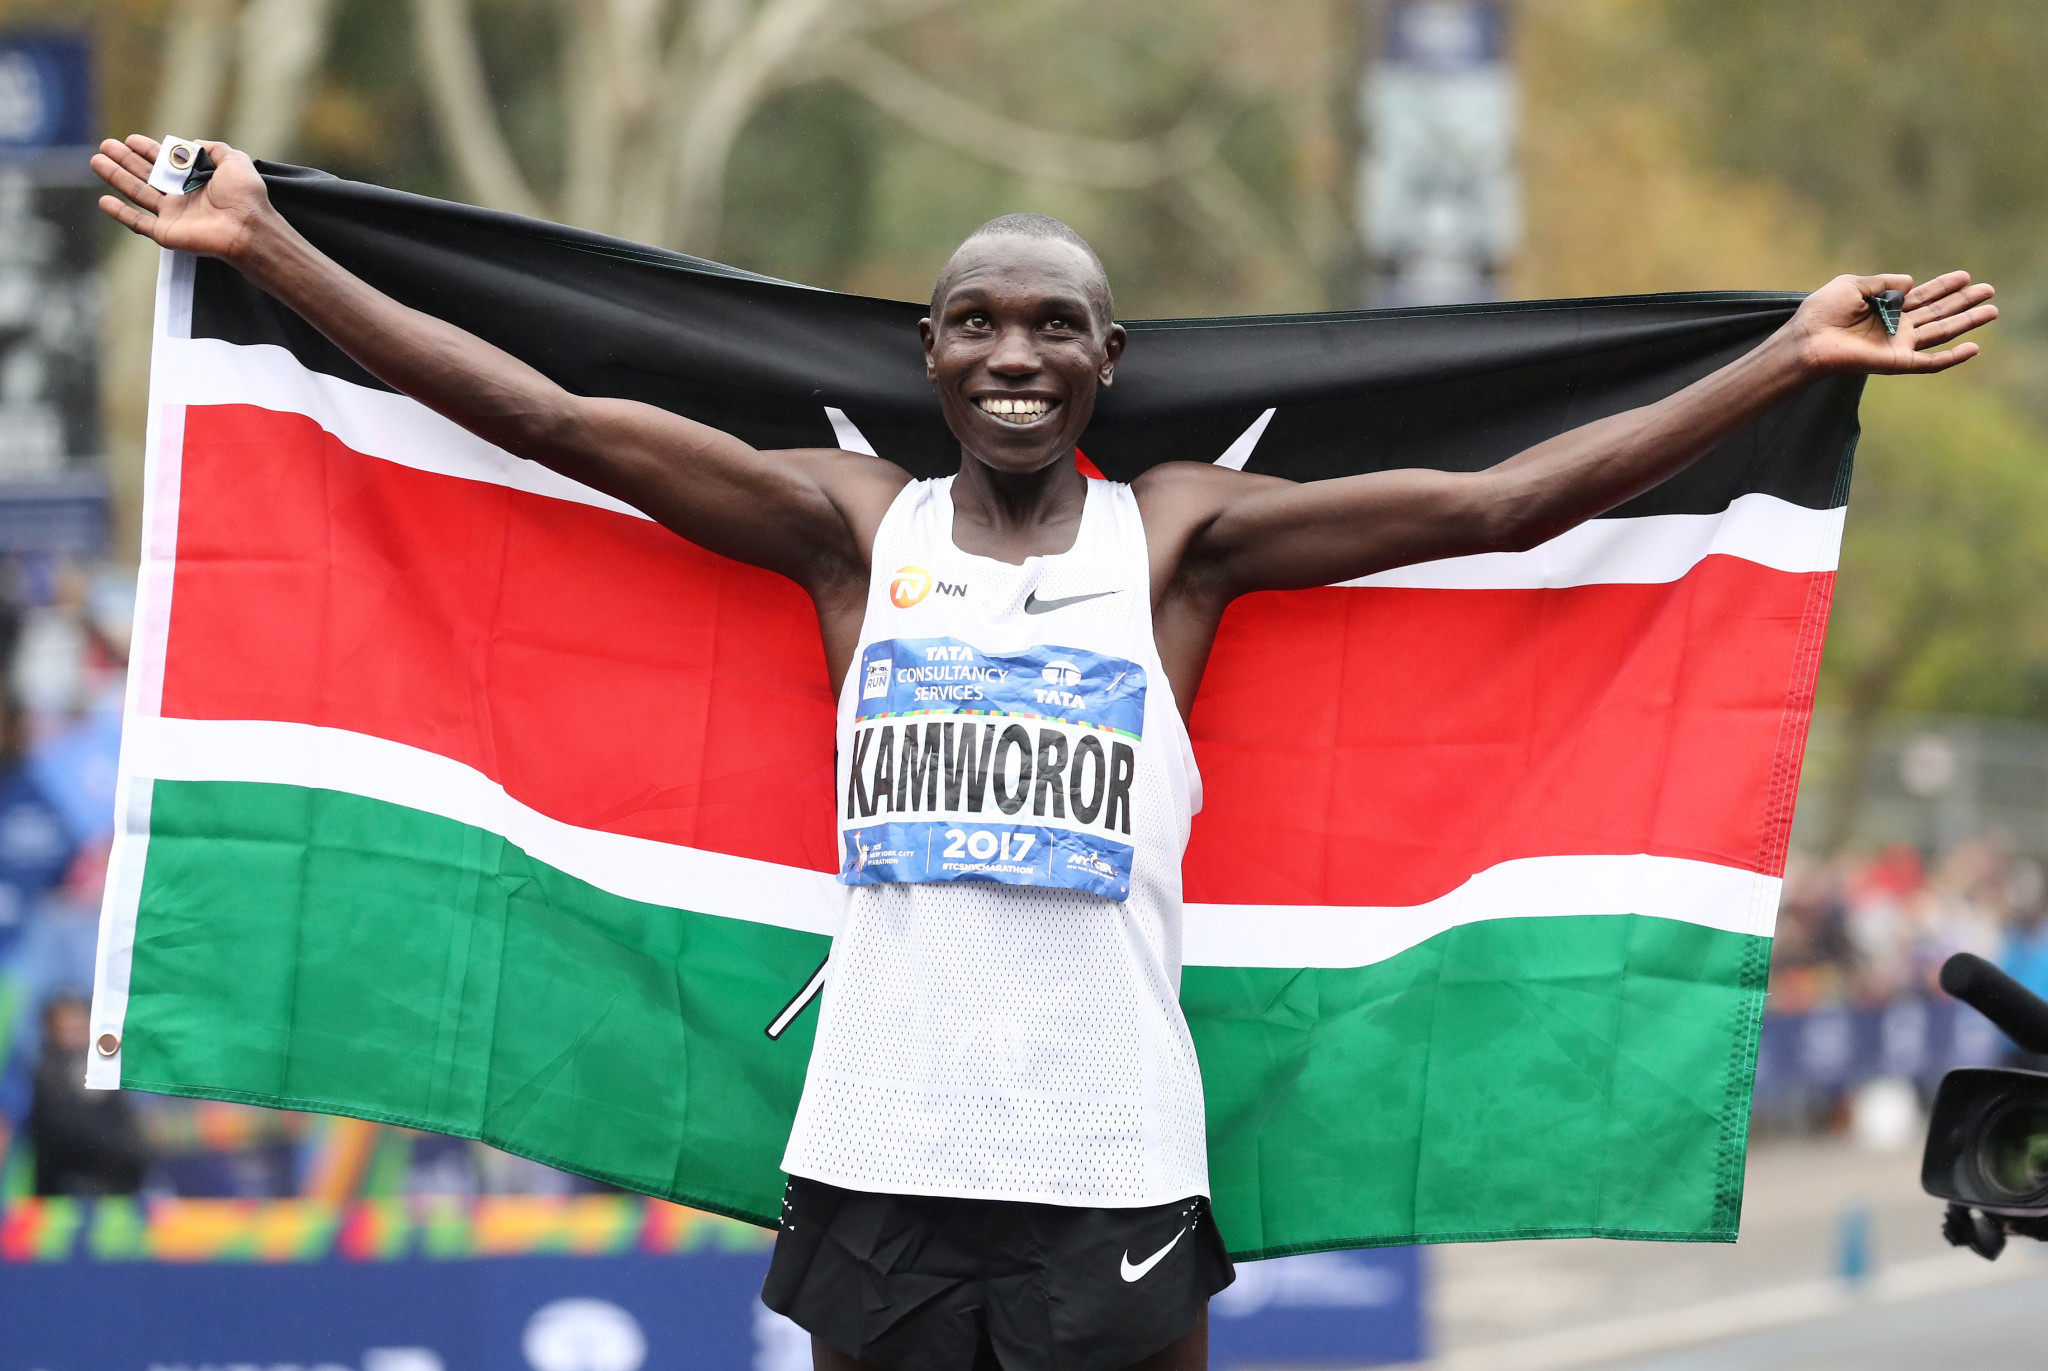 Kenya's Kamworor to skip Gold Coast 2018 to focus on World Half Marathon Championships